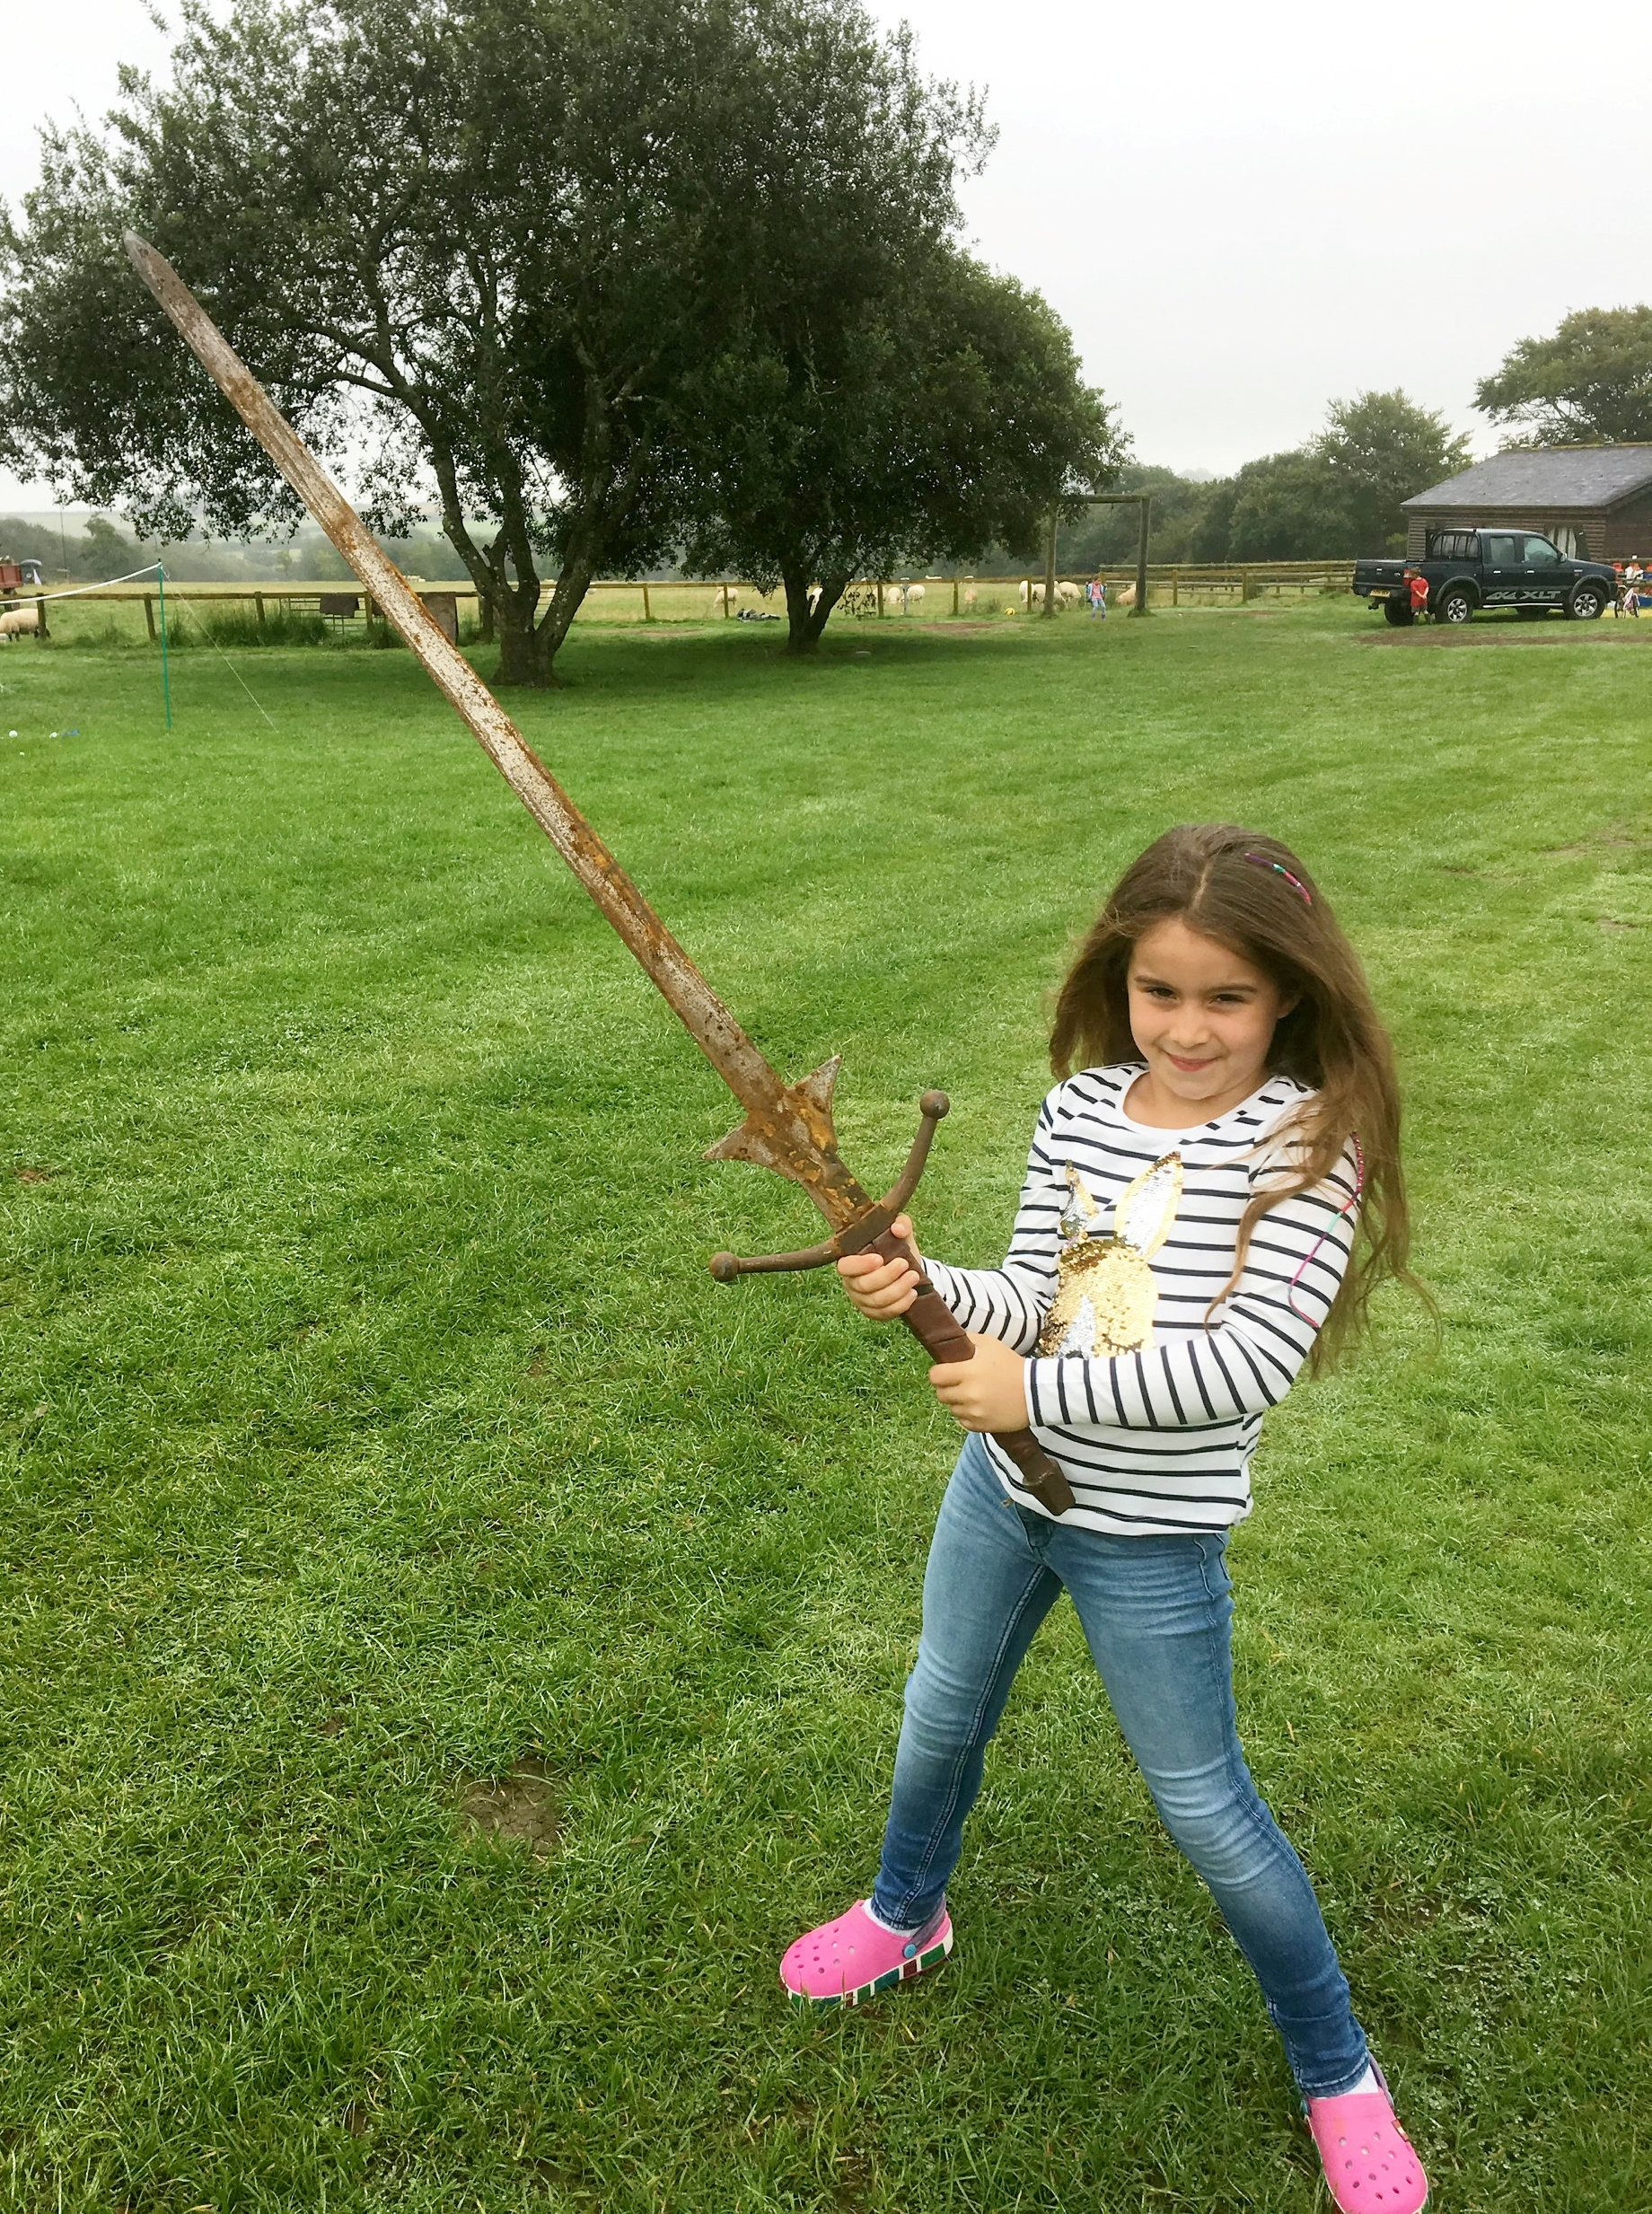 Matilda Jones, from Norton, Doncaster, with the sword.  A schoolgirl could become a thing of legend after pulling an historic